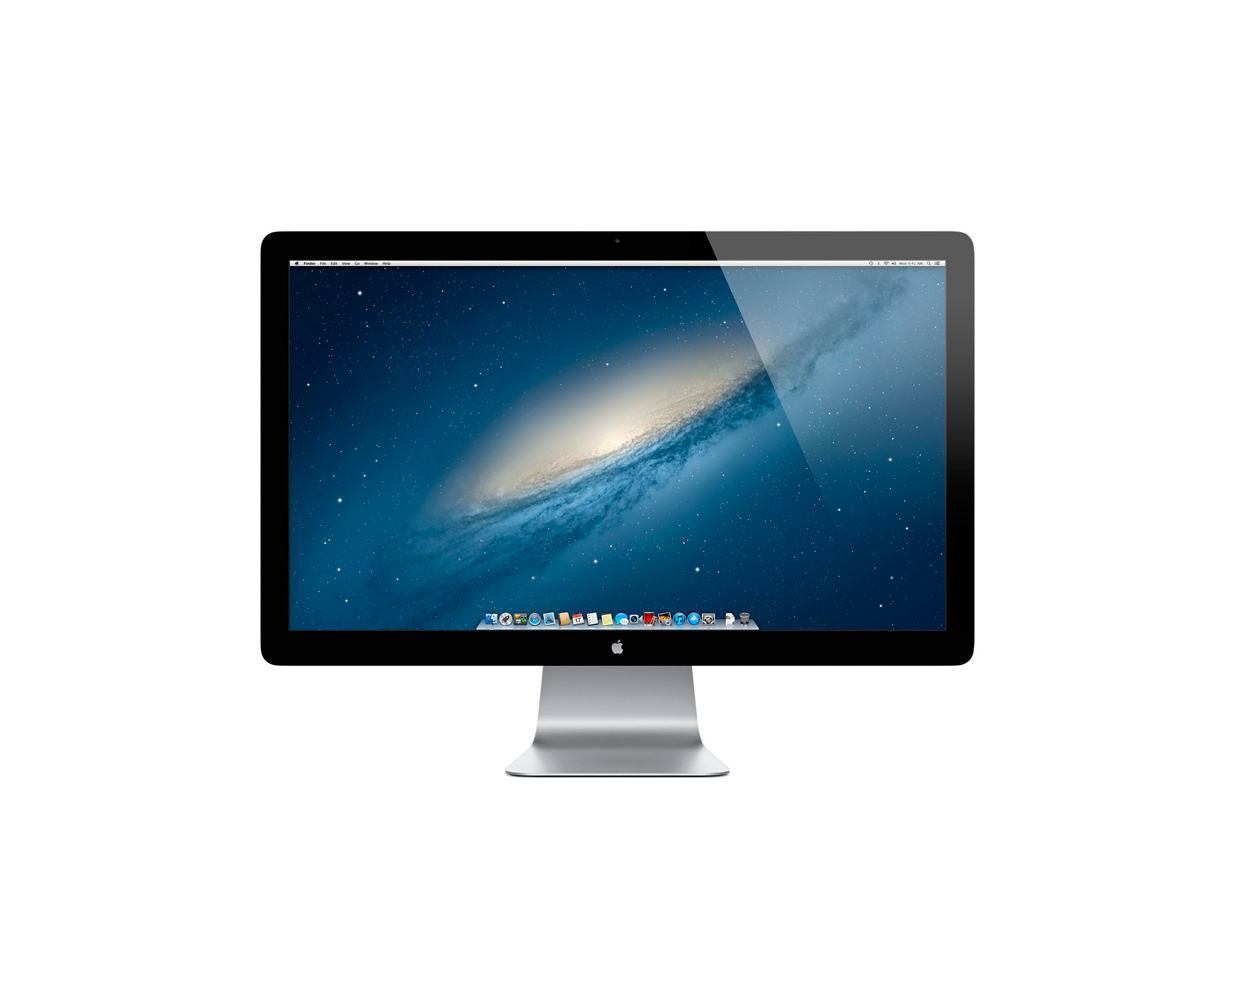 Мониторы: Thunderbolt Display, фотография №1